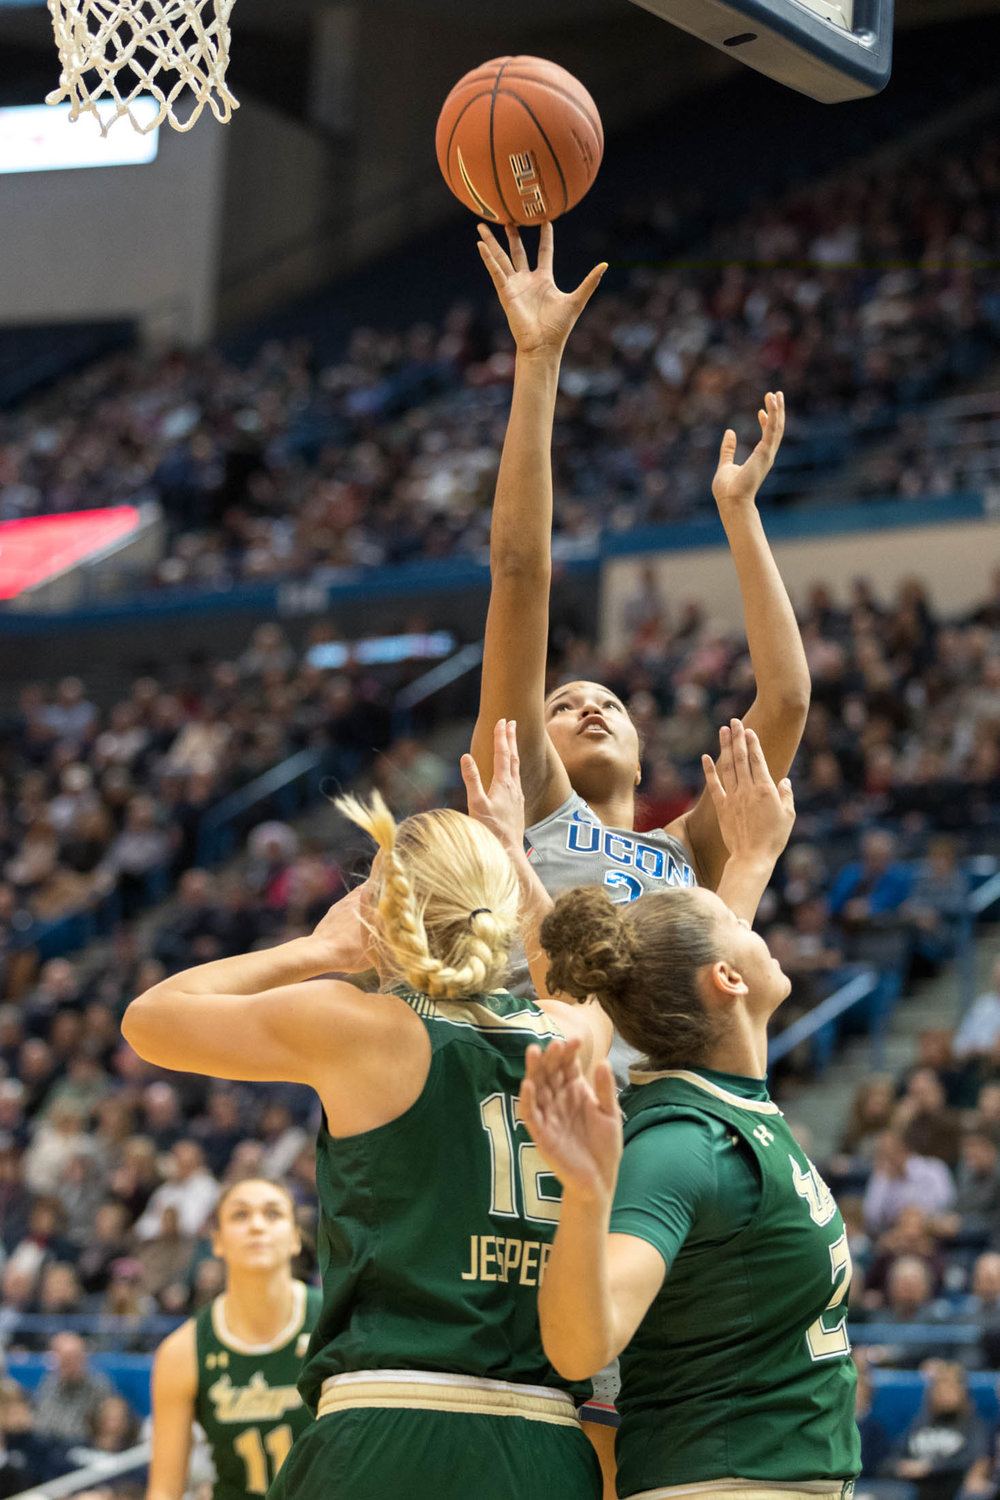 Sophomore guard Napheesa Collier floats a shot above two USF defenders during the Huskies historic 90 win on Jan. 10, 2016 at the XL Center in Hartford. (Owen Bonaventura/The Daily Campus)